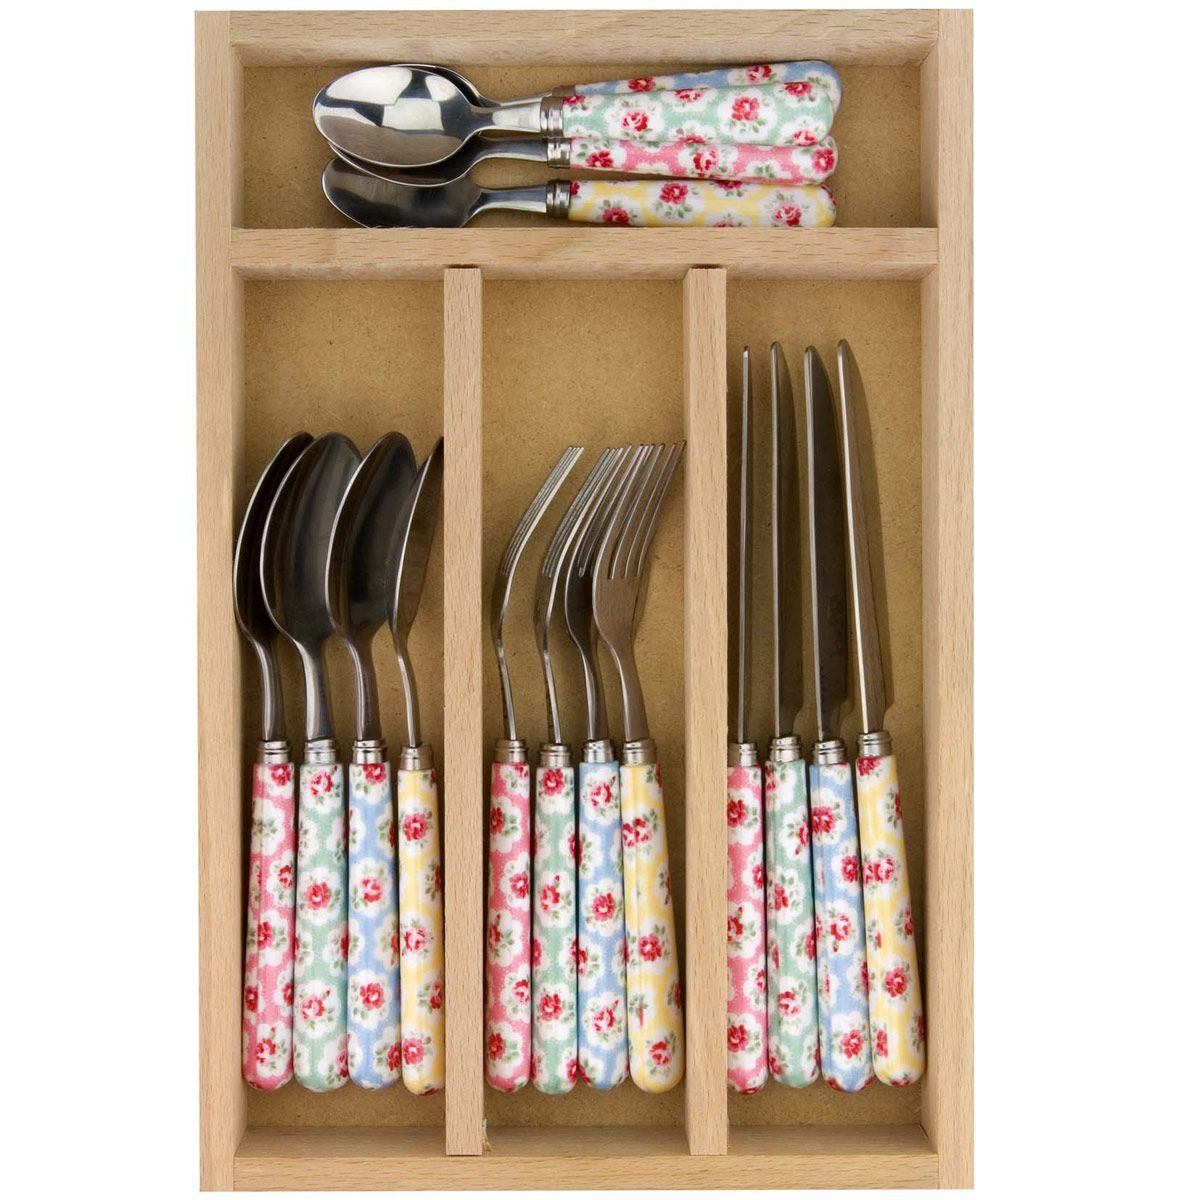 New Home | Provence Rose 16 Piece Cutlery Set | CathKidston  sc 1 st  Pinterest & New Home | Provence Rose 16 Piece Cutlery Set | CathKidston ...